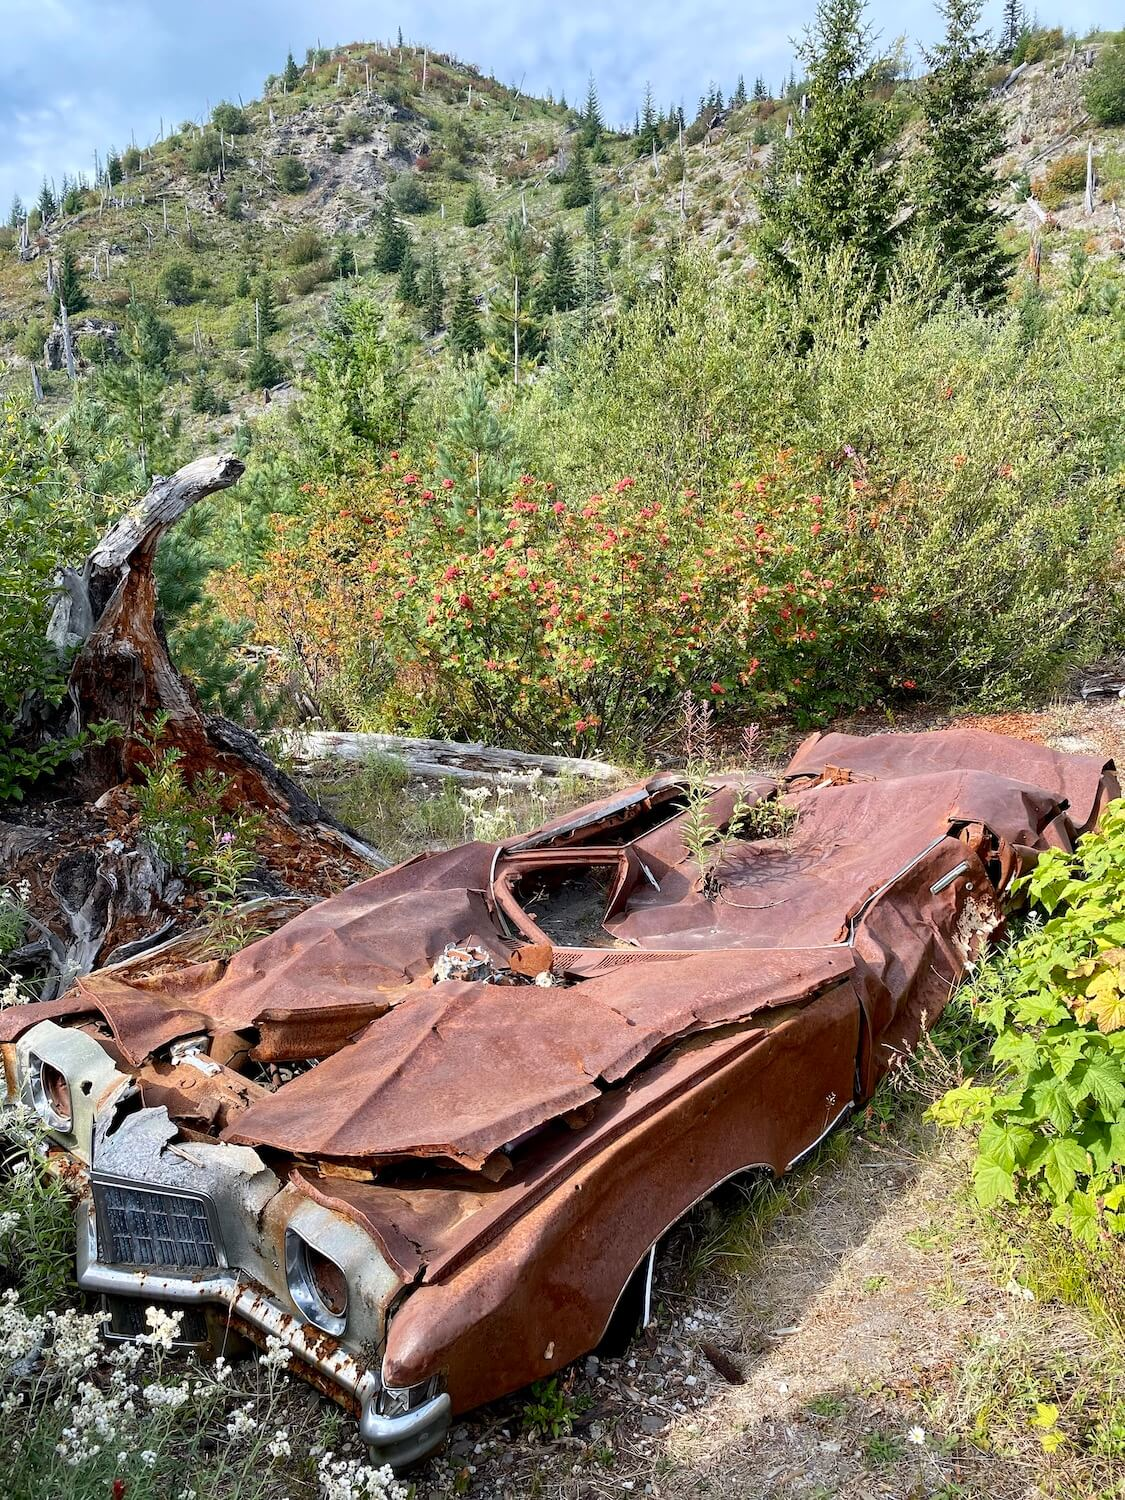 This photo is a 1972 Pontiac Grand Prix that was destroyed in the May 18, 1980 blast of Mount St. Helens. The car is on a hillside with short vegetation and small fir trees. The sky is blue.